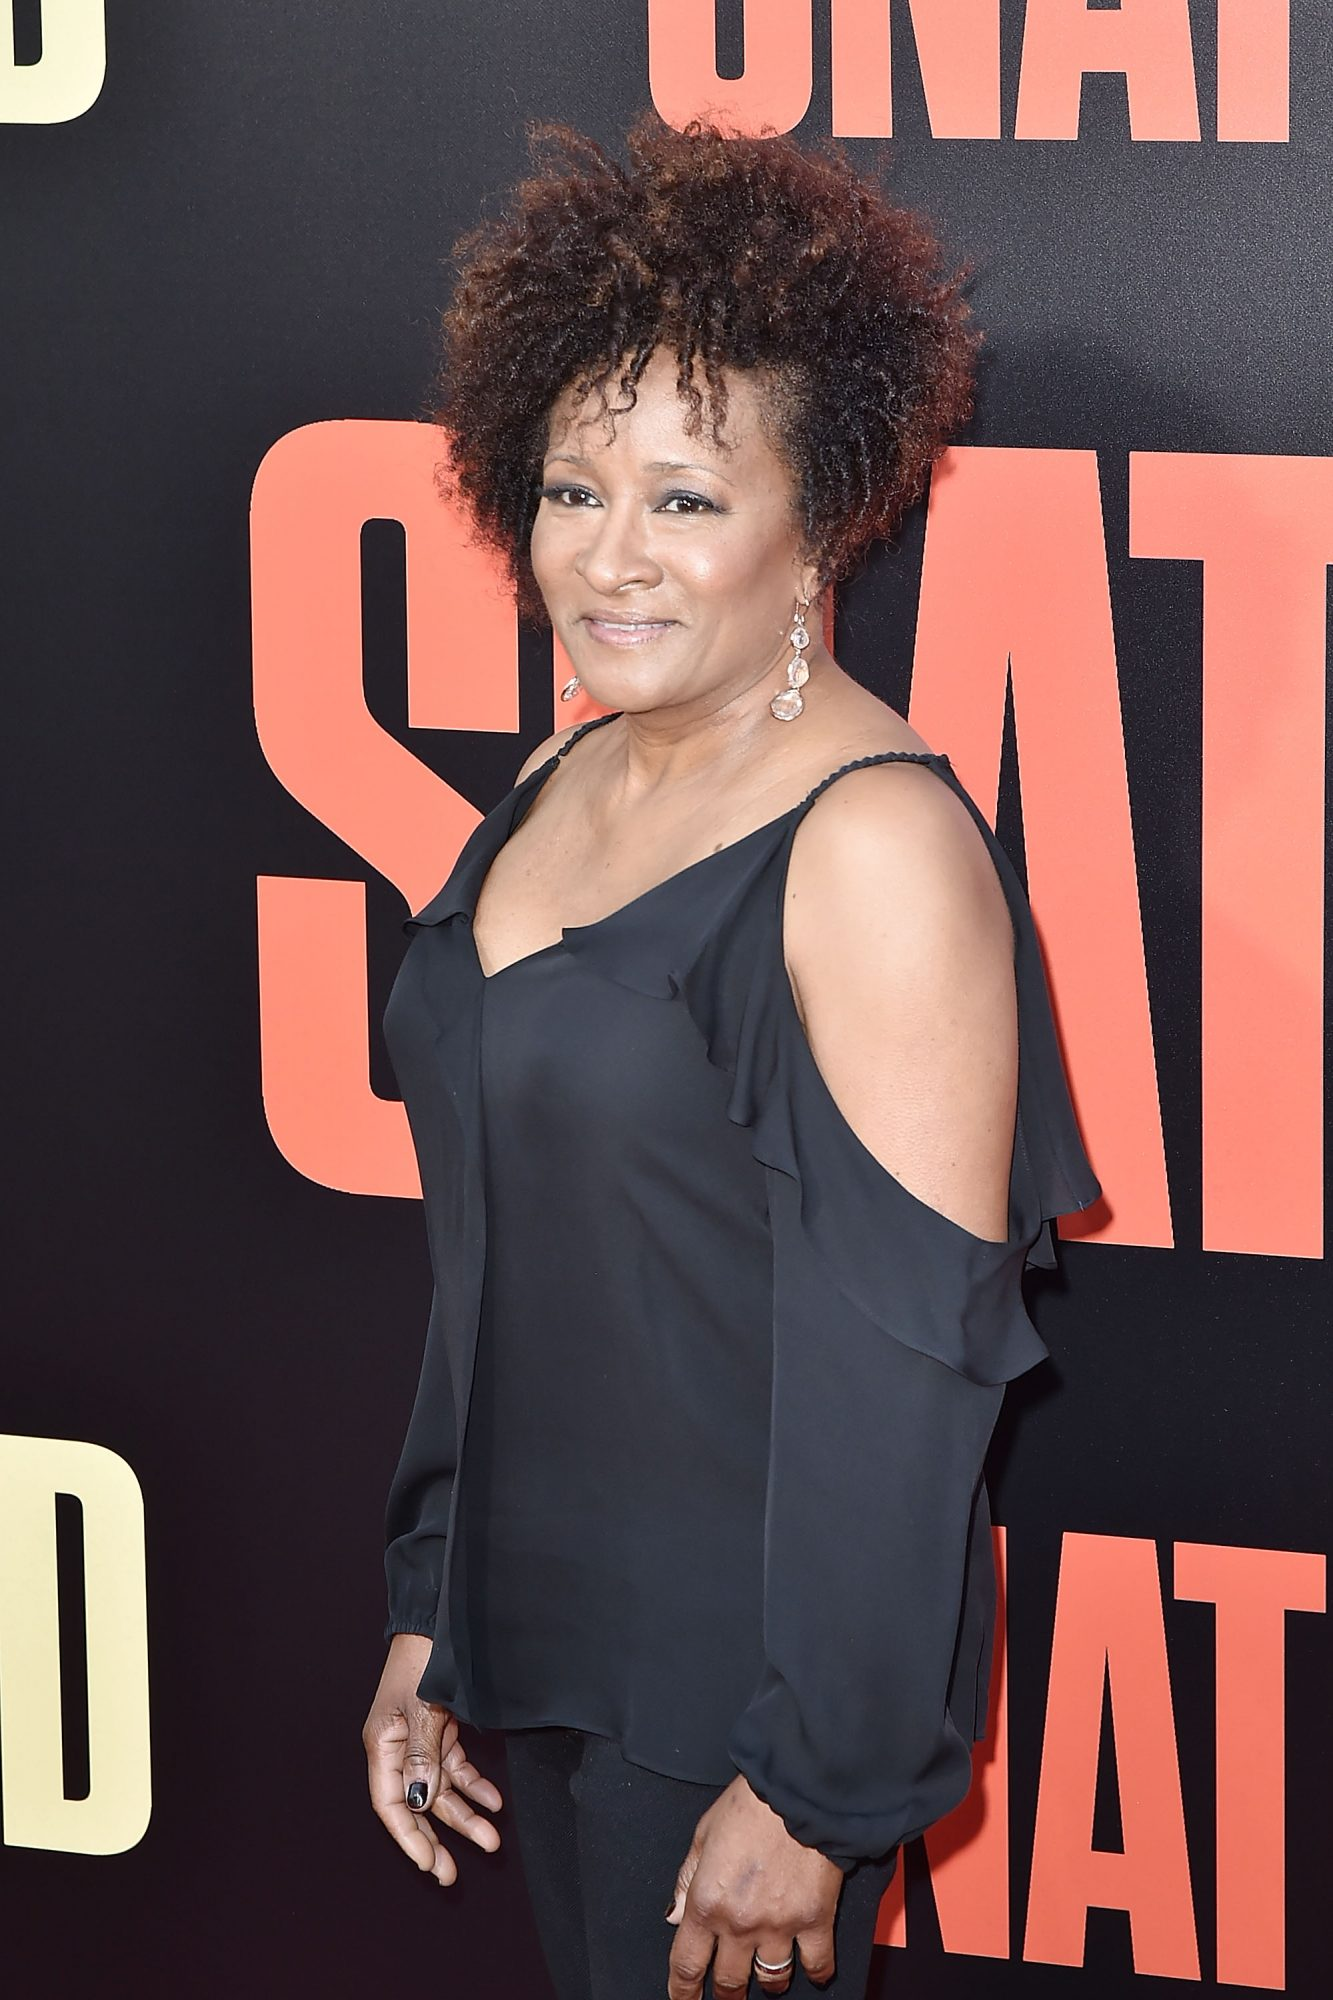 Wanda Sykes (diagnosed 2011 at age 47)